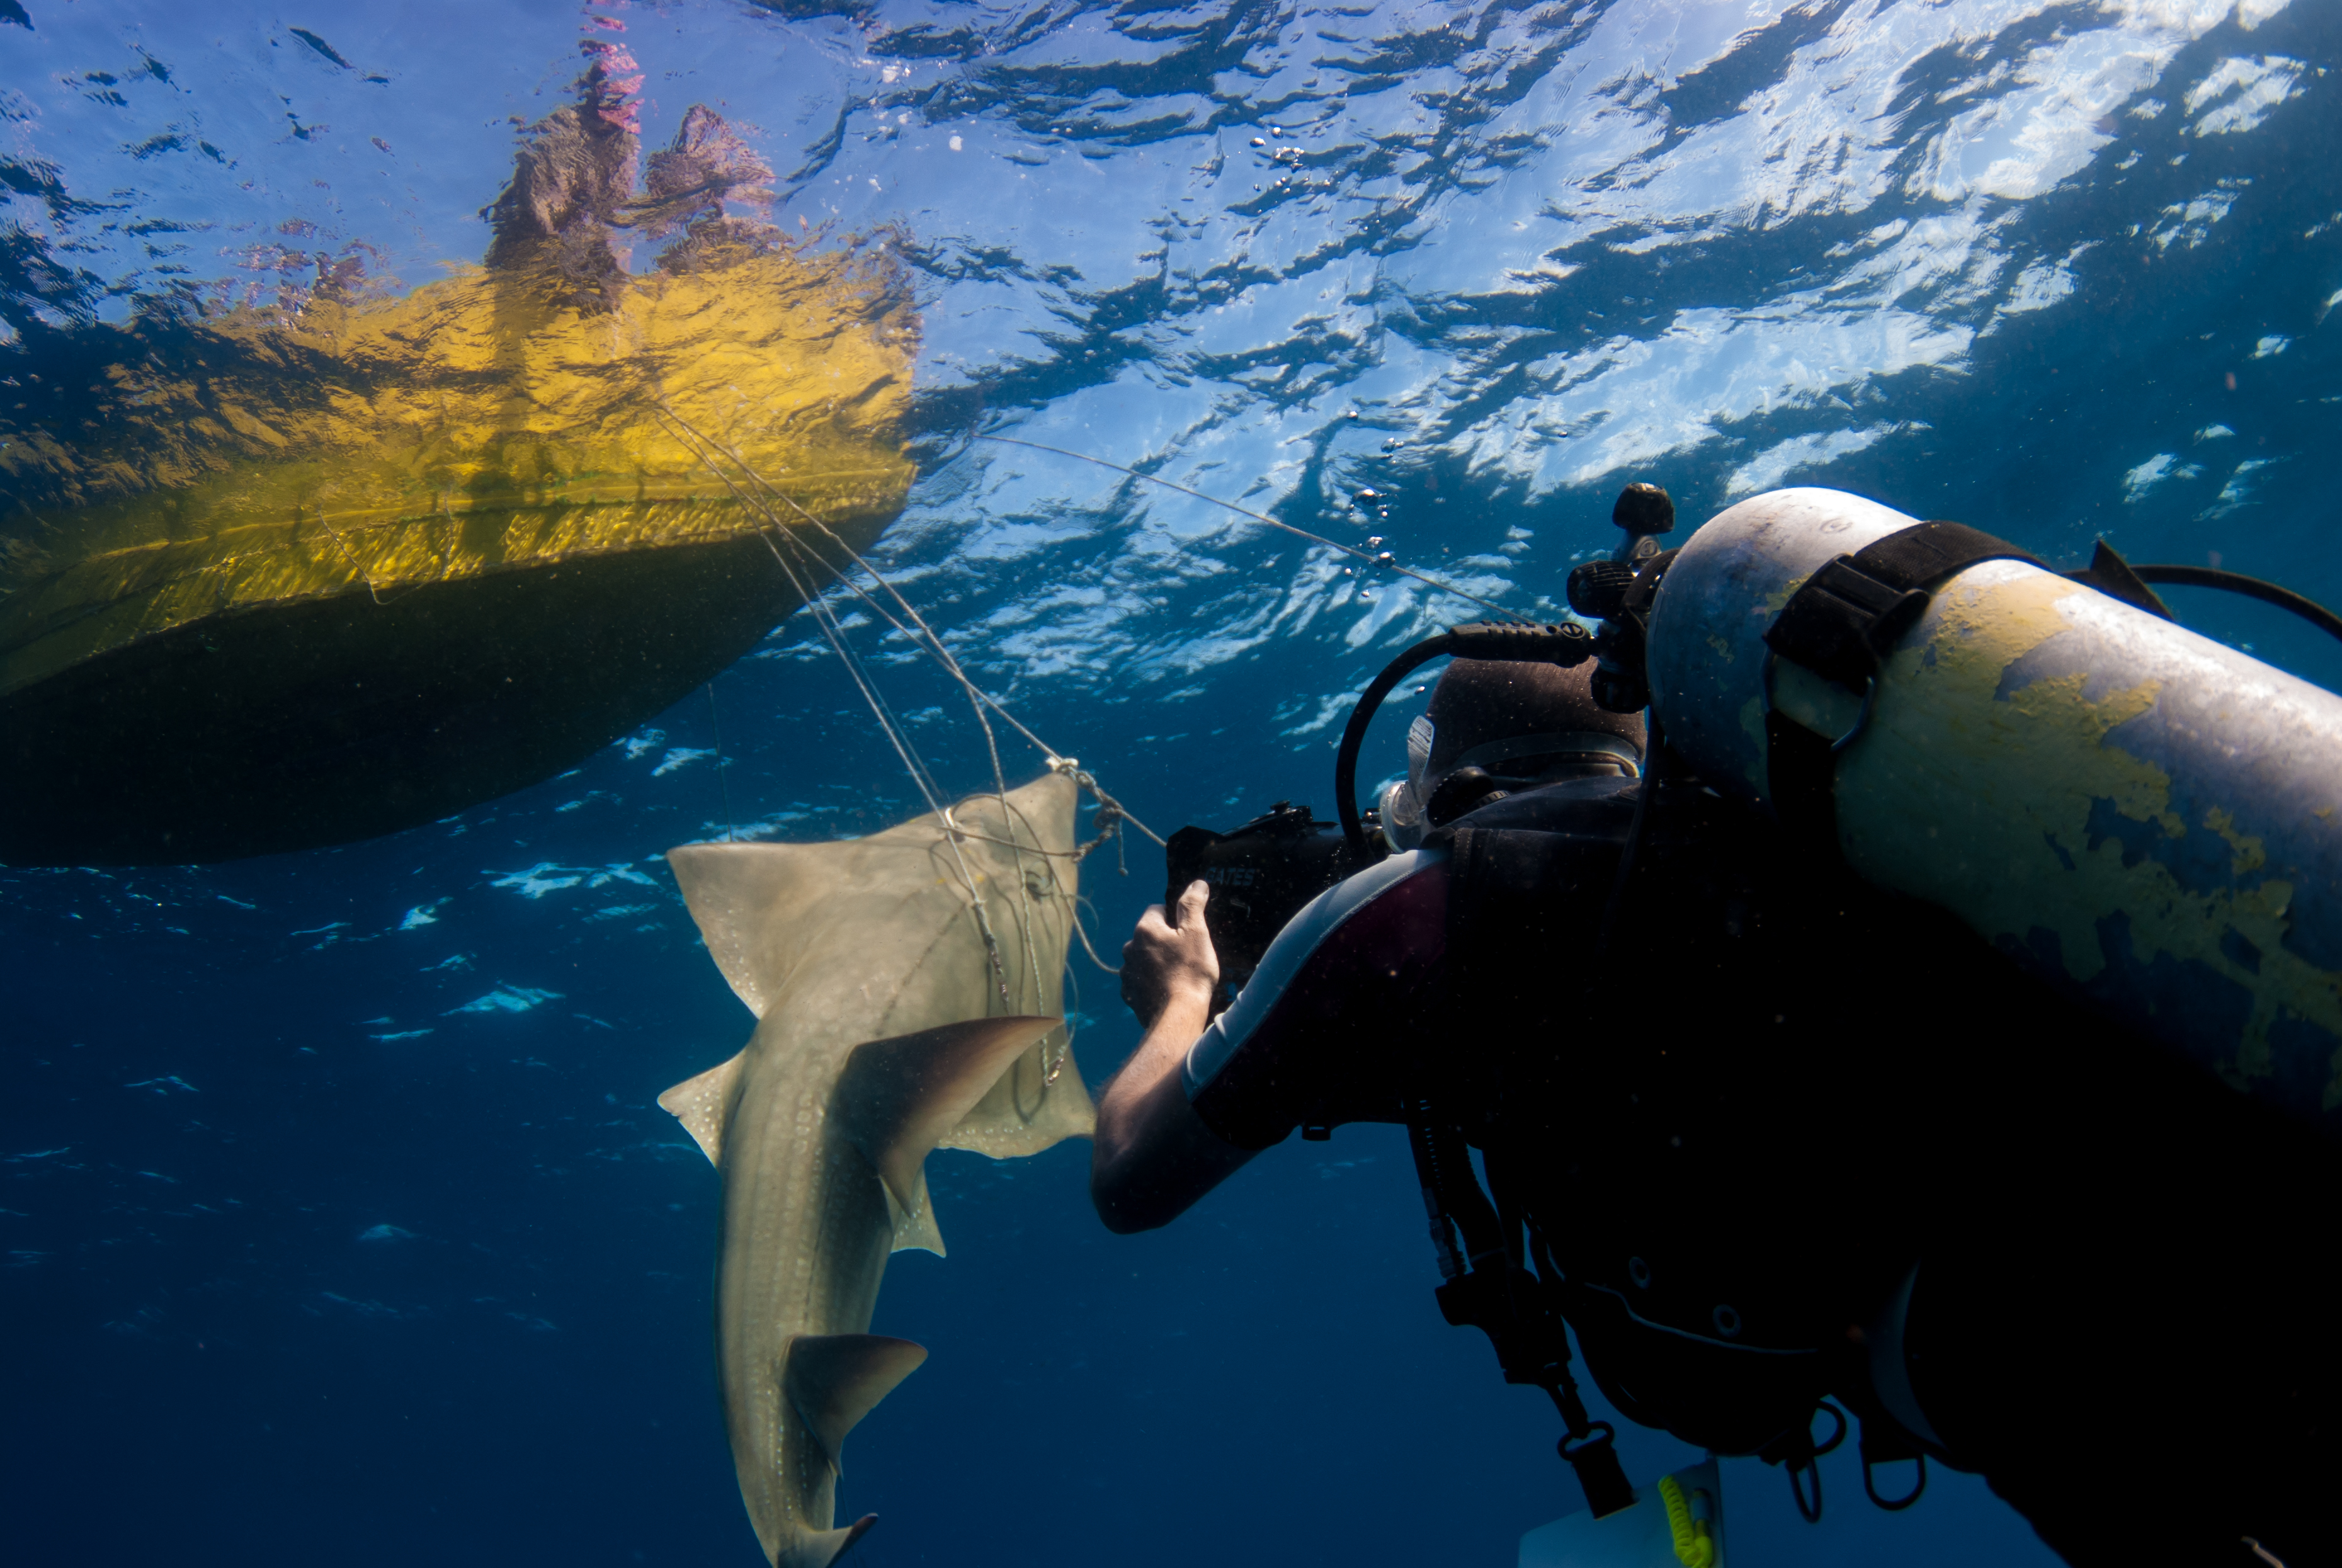 Chris Scarffe Filming A Guitar Fish For Shark FInning Documentary Shiver (Copyright C.J Coetzee)